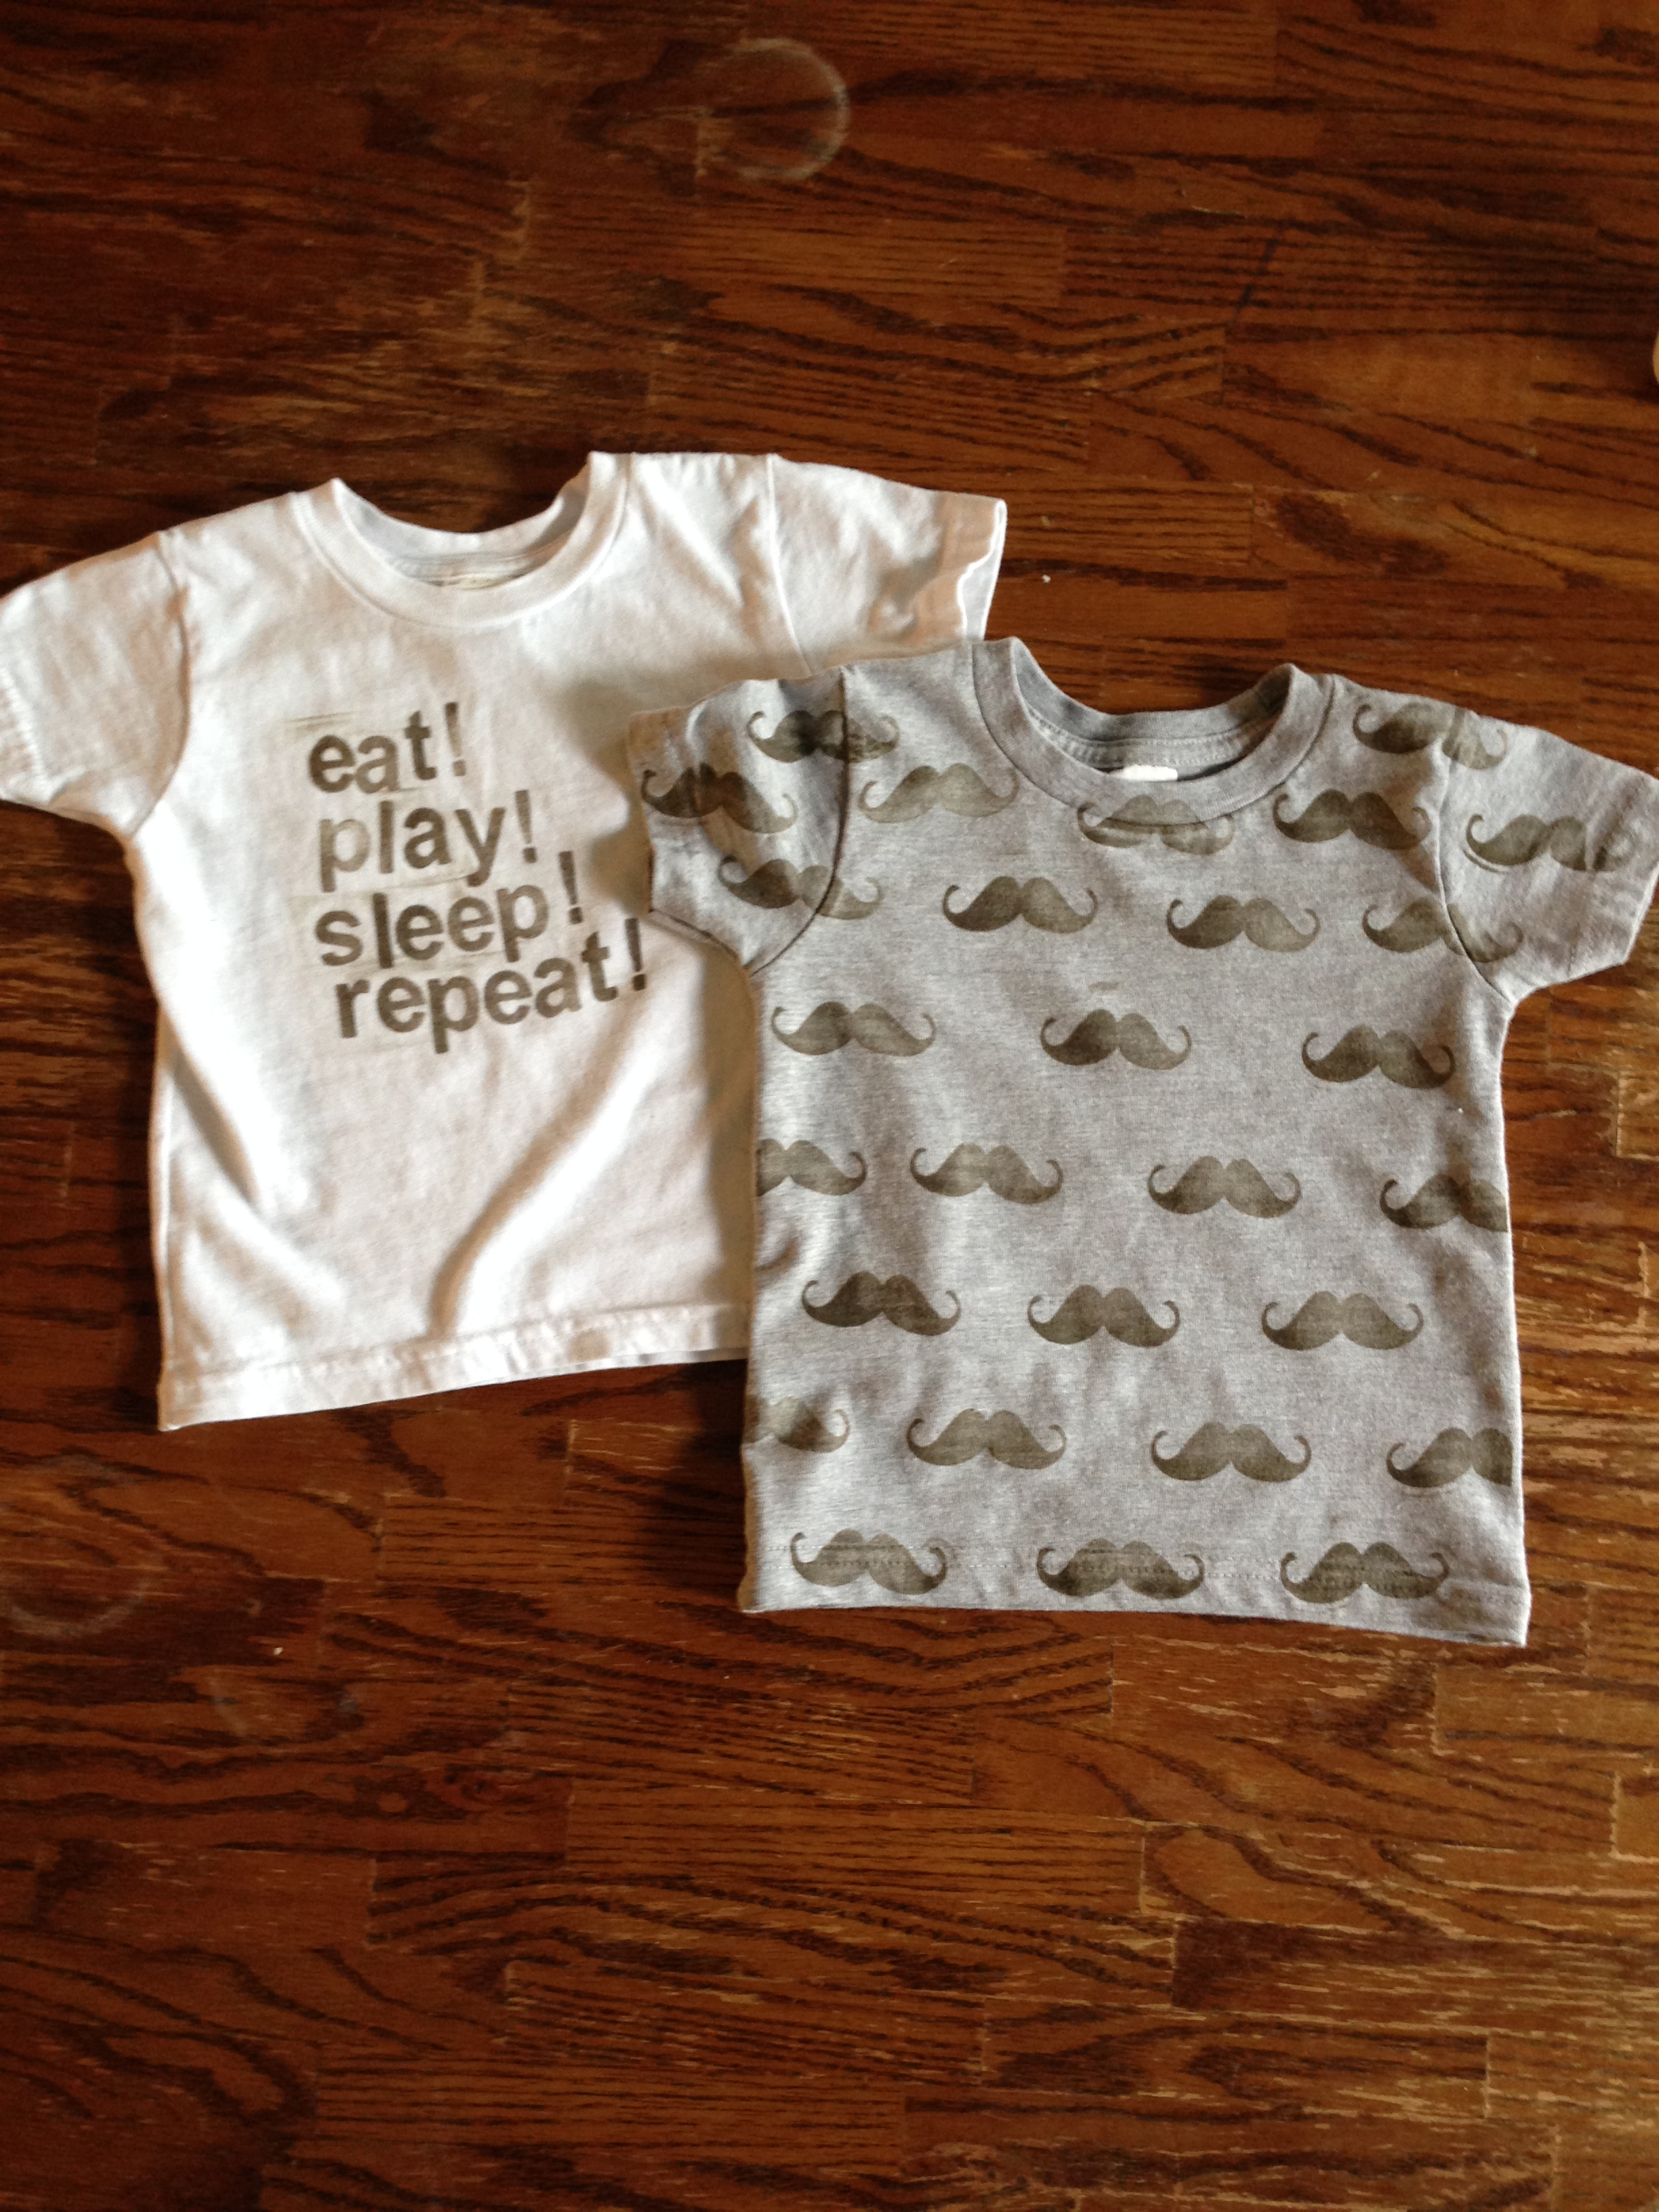 DIY hand stamped t-shirt and design ideas [tutorial]